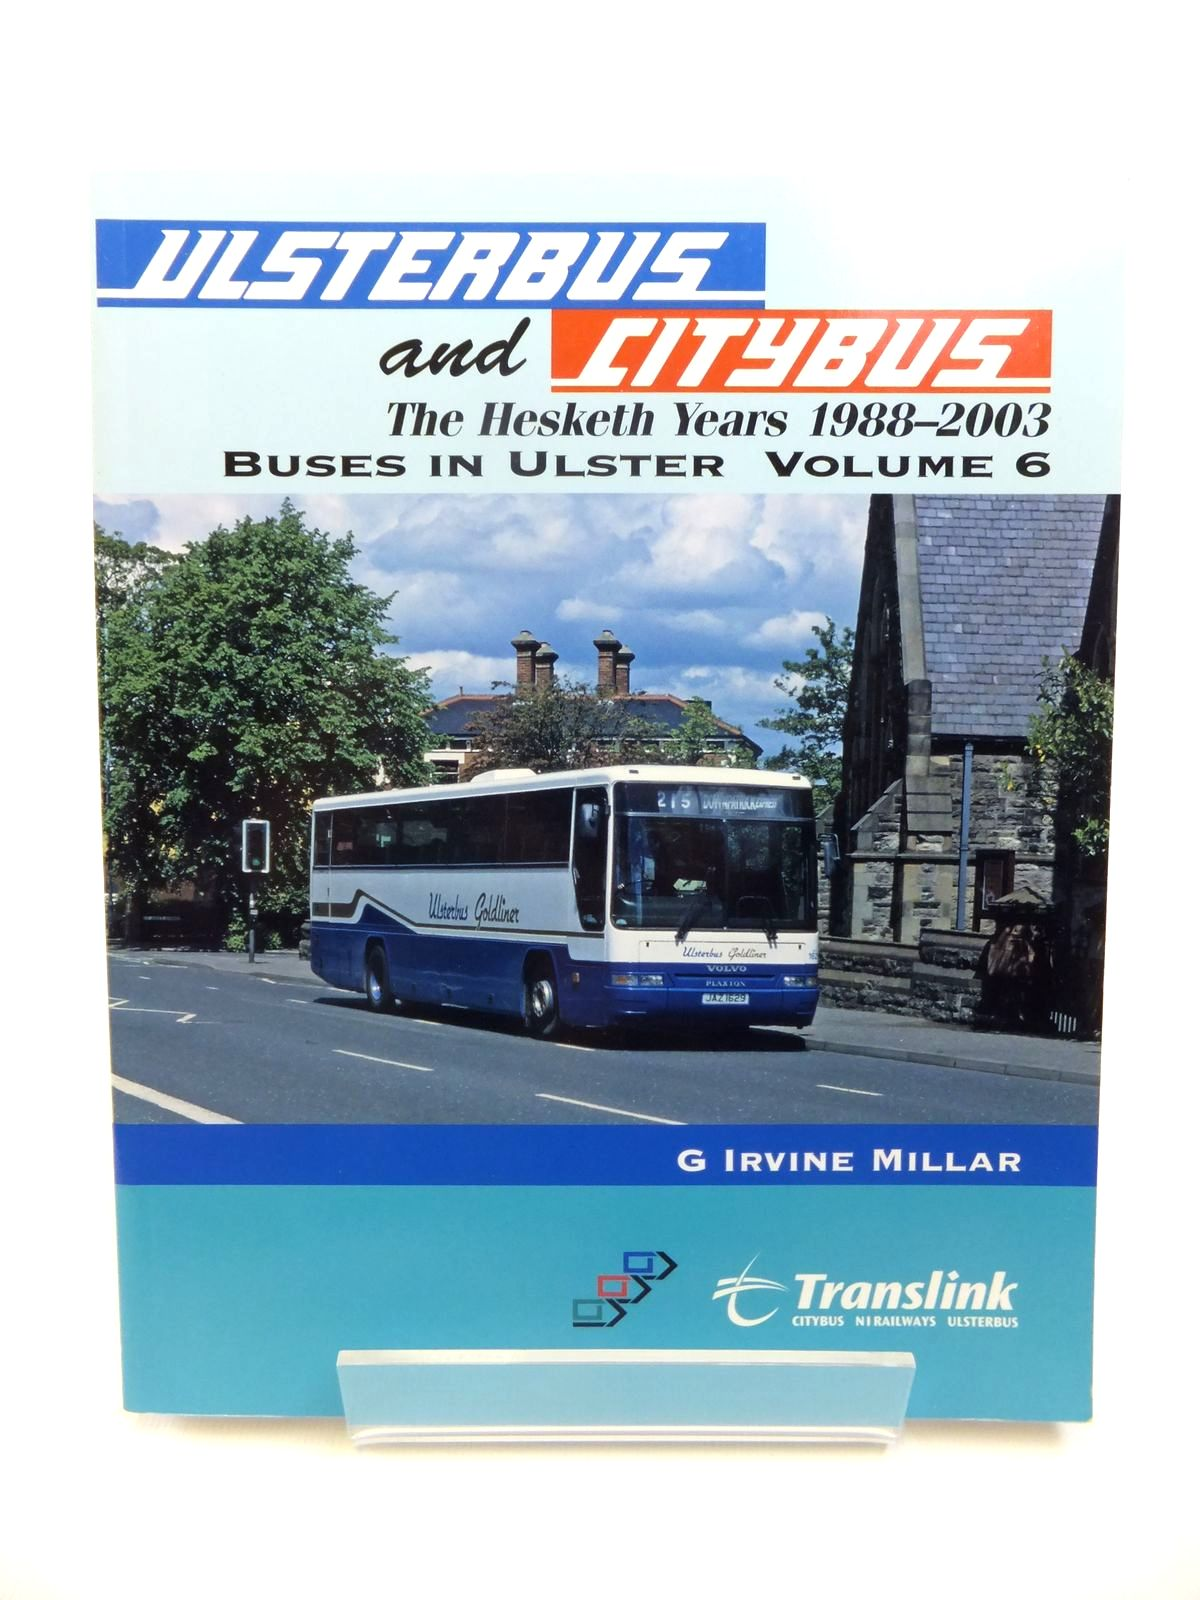 Photo of ULSTERBUS AND CITYBUS 1988-2003 THE HESKETH YEARS BUSES IN ULSTER VOLUME 6 written by Millar, G. Irvine published by Colourpoint Books (STOCK CODE: 1812391)  for sale by Stella & Rose's Books